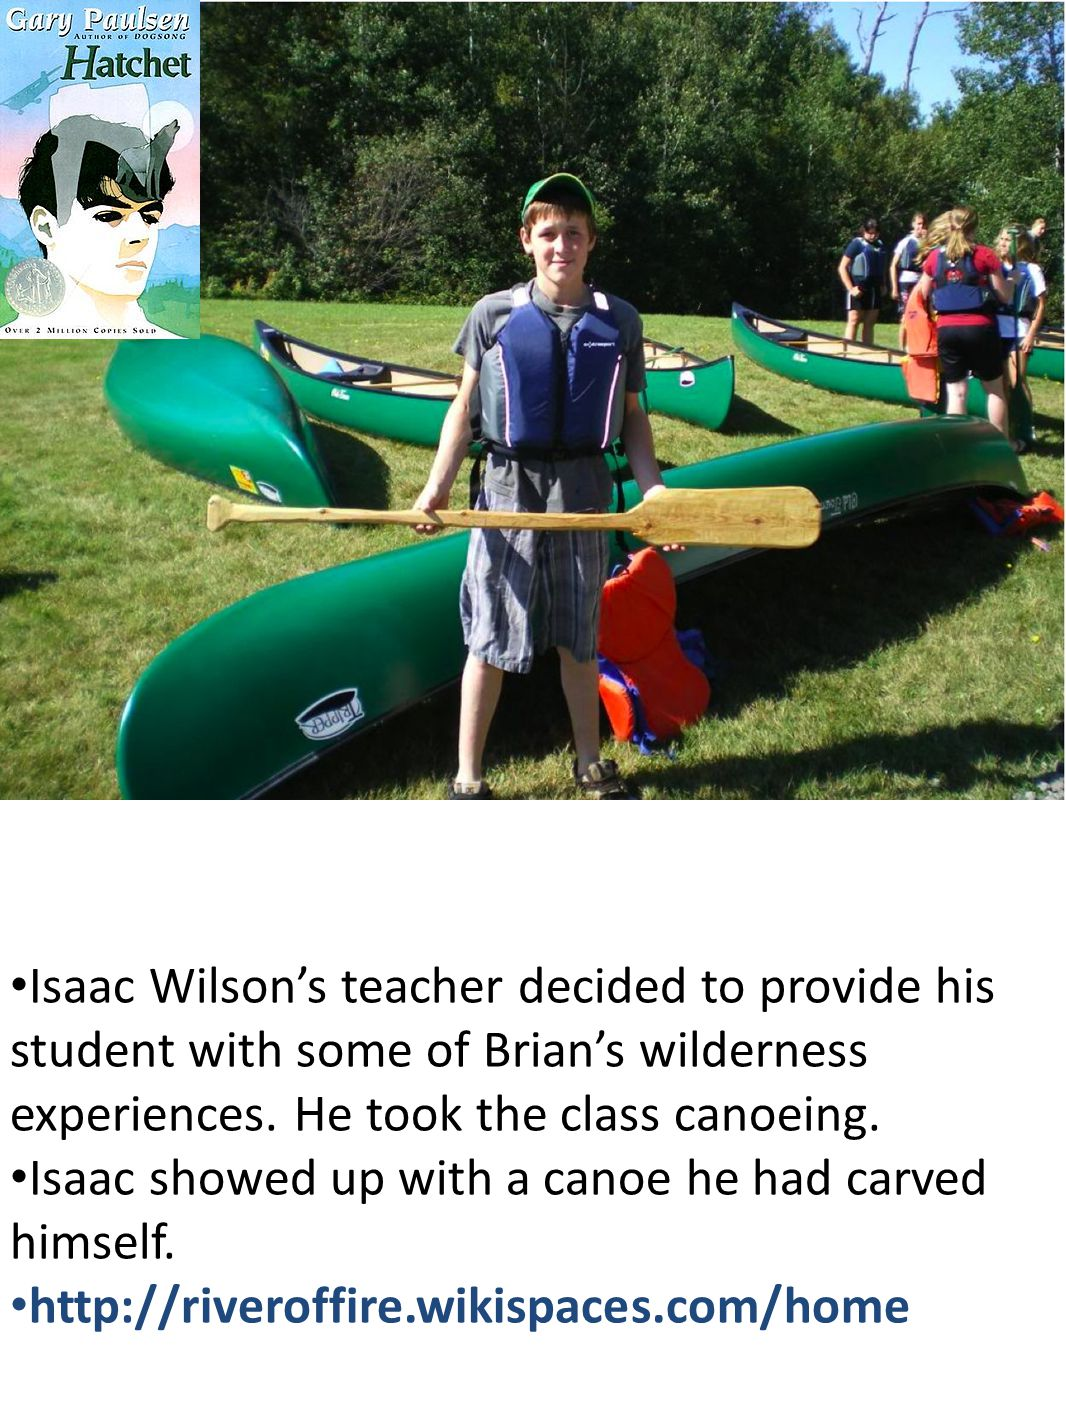 Isaac Wilson's teacher decided to provide his student with some of Brian's wilderness experiences.